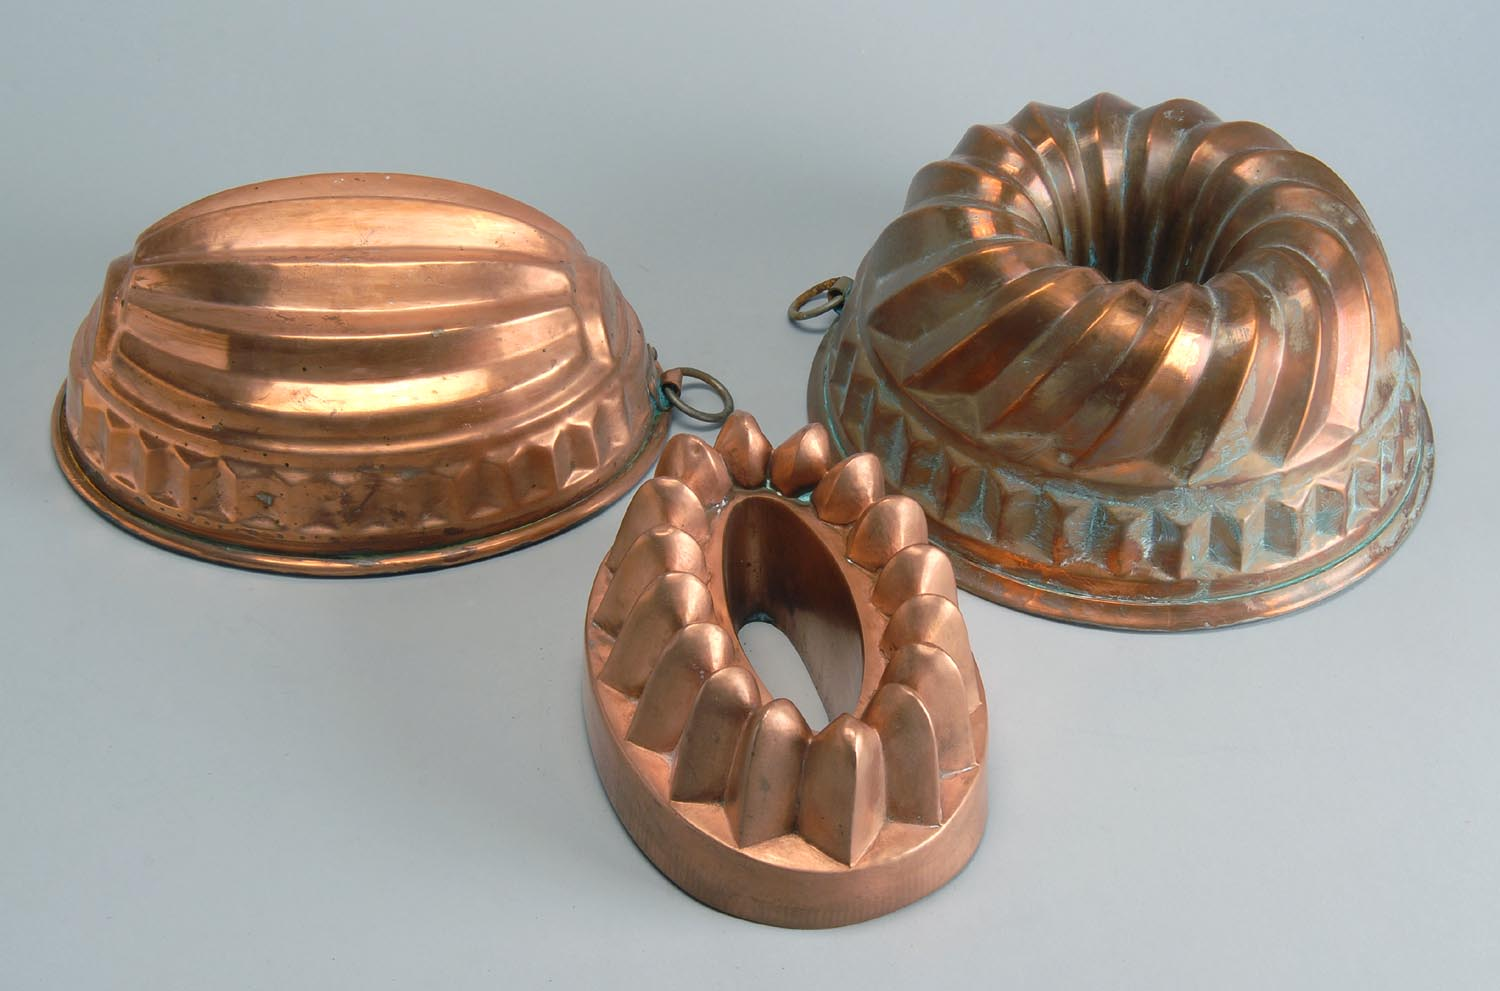 THREE TIN-LINED COPPER PUDDING MOLDS in melon,